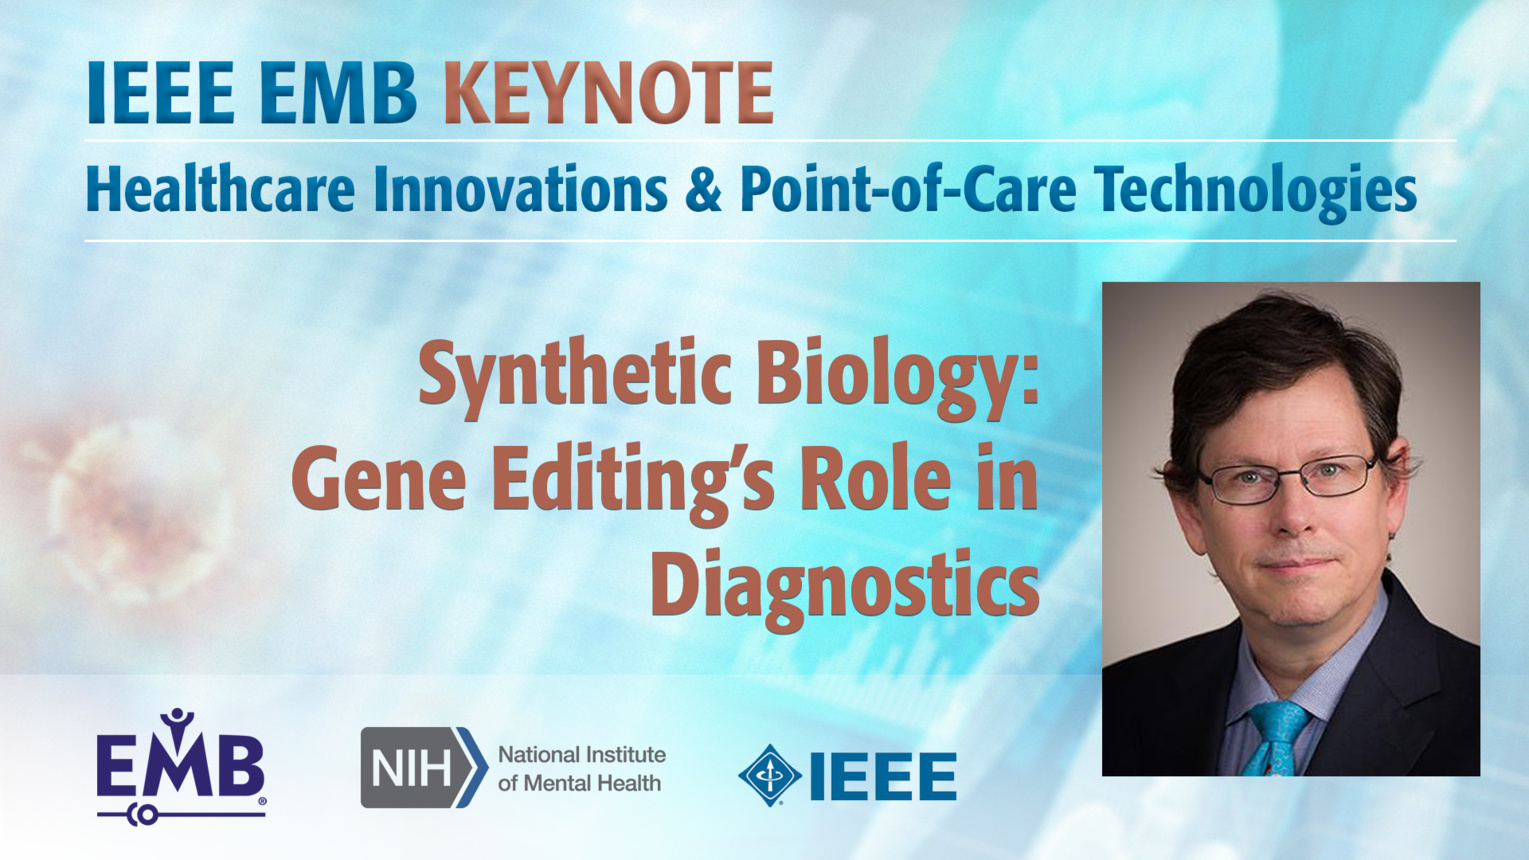 Synthetic Biology: Gene Editing's Role in Diagnostics - Andrew Ellington - IEEE EMBS at NIH, 2019